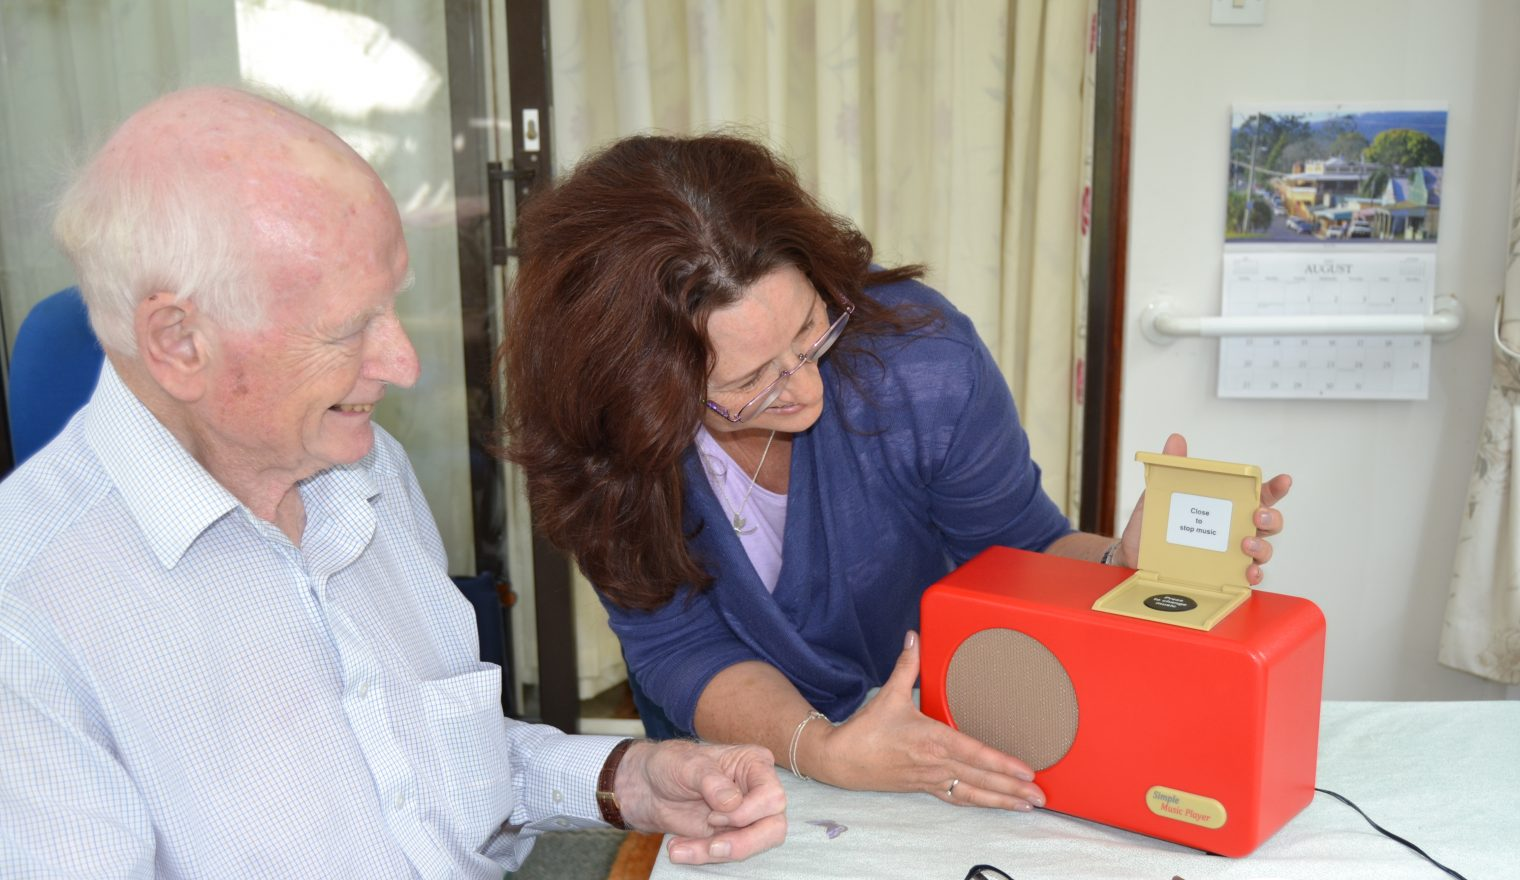 An older man with his daughter looking at the Simple Music Player